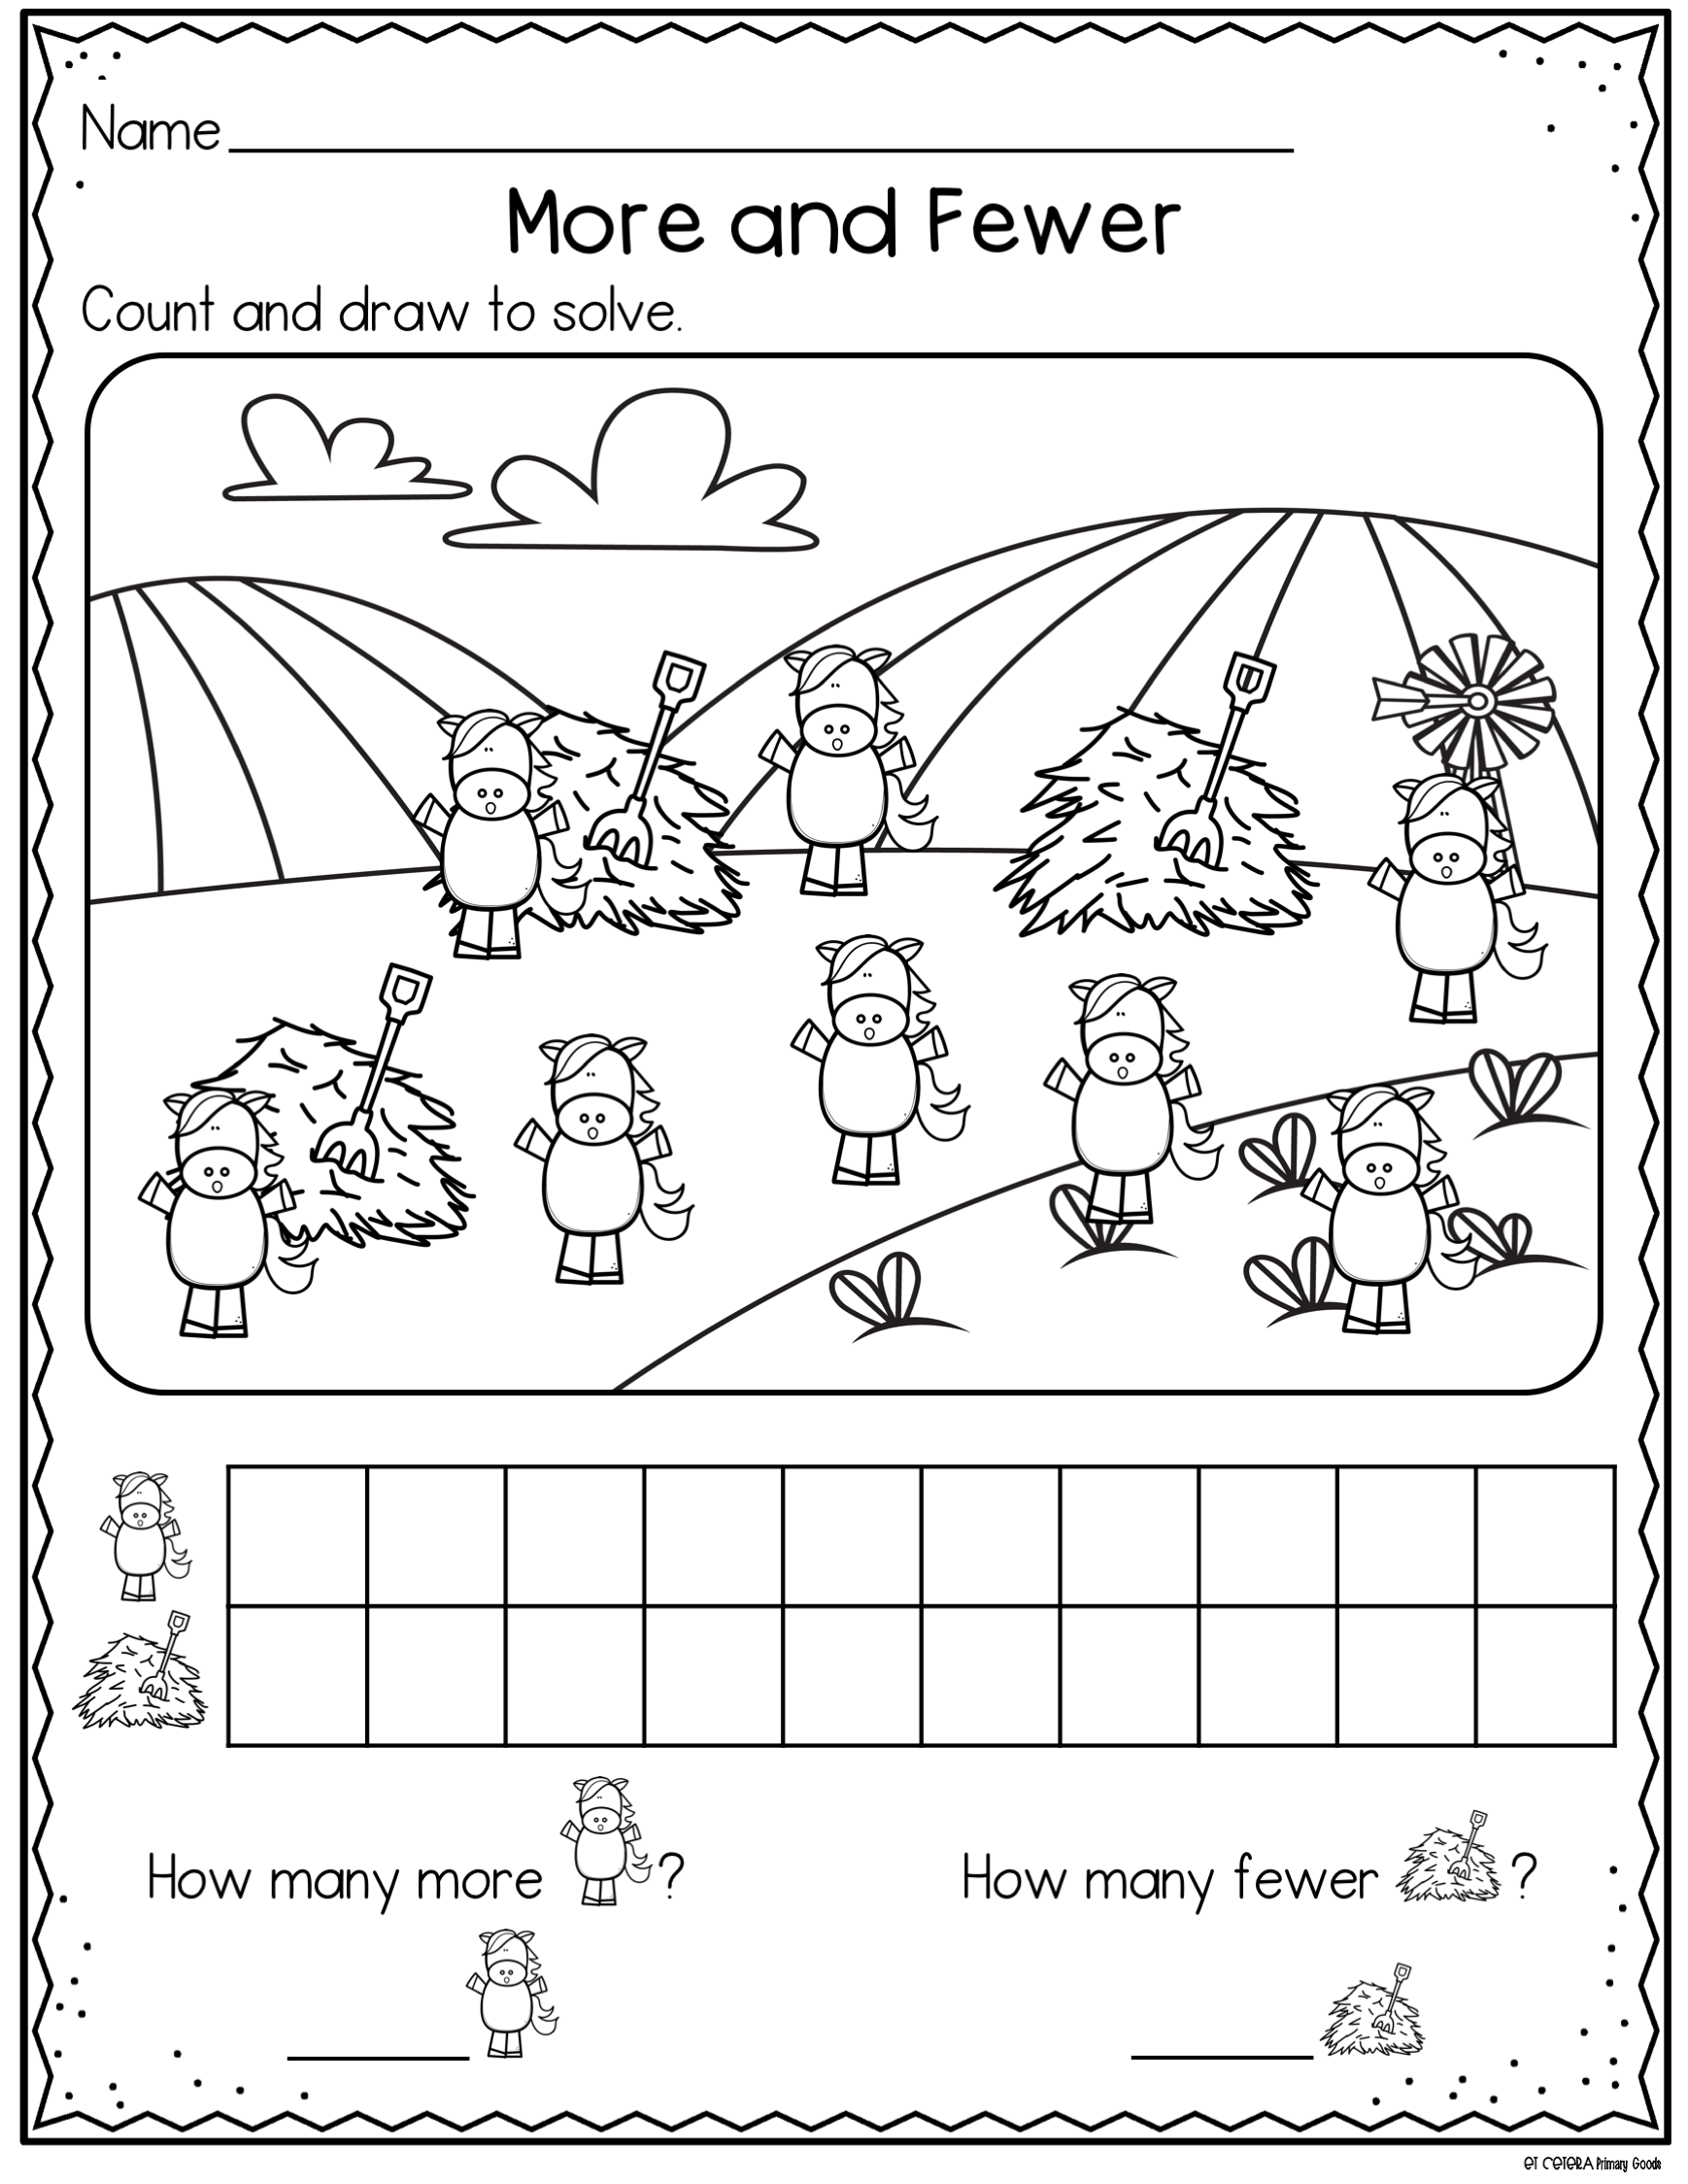 medium resolution of More and Fewer Comparing Sets   Kindergarten math worksheets